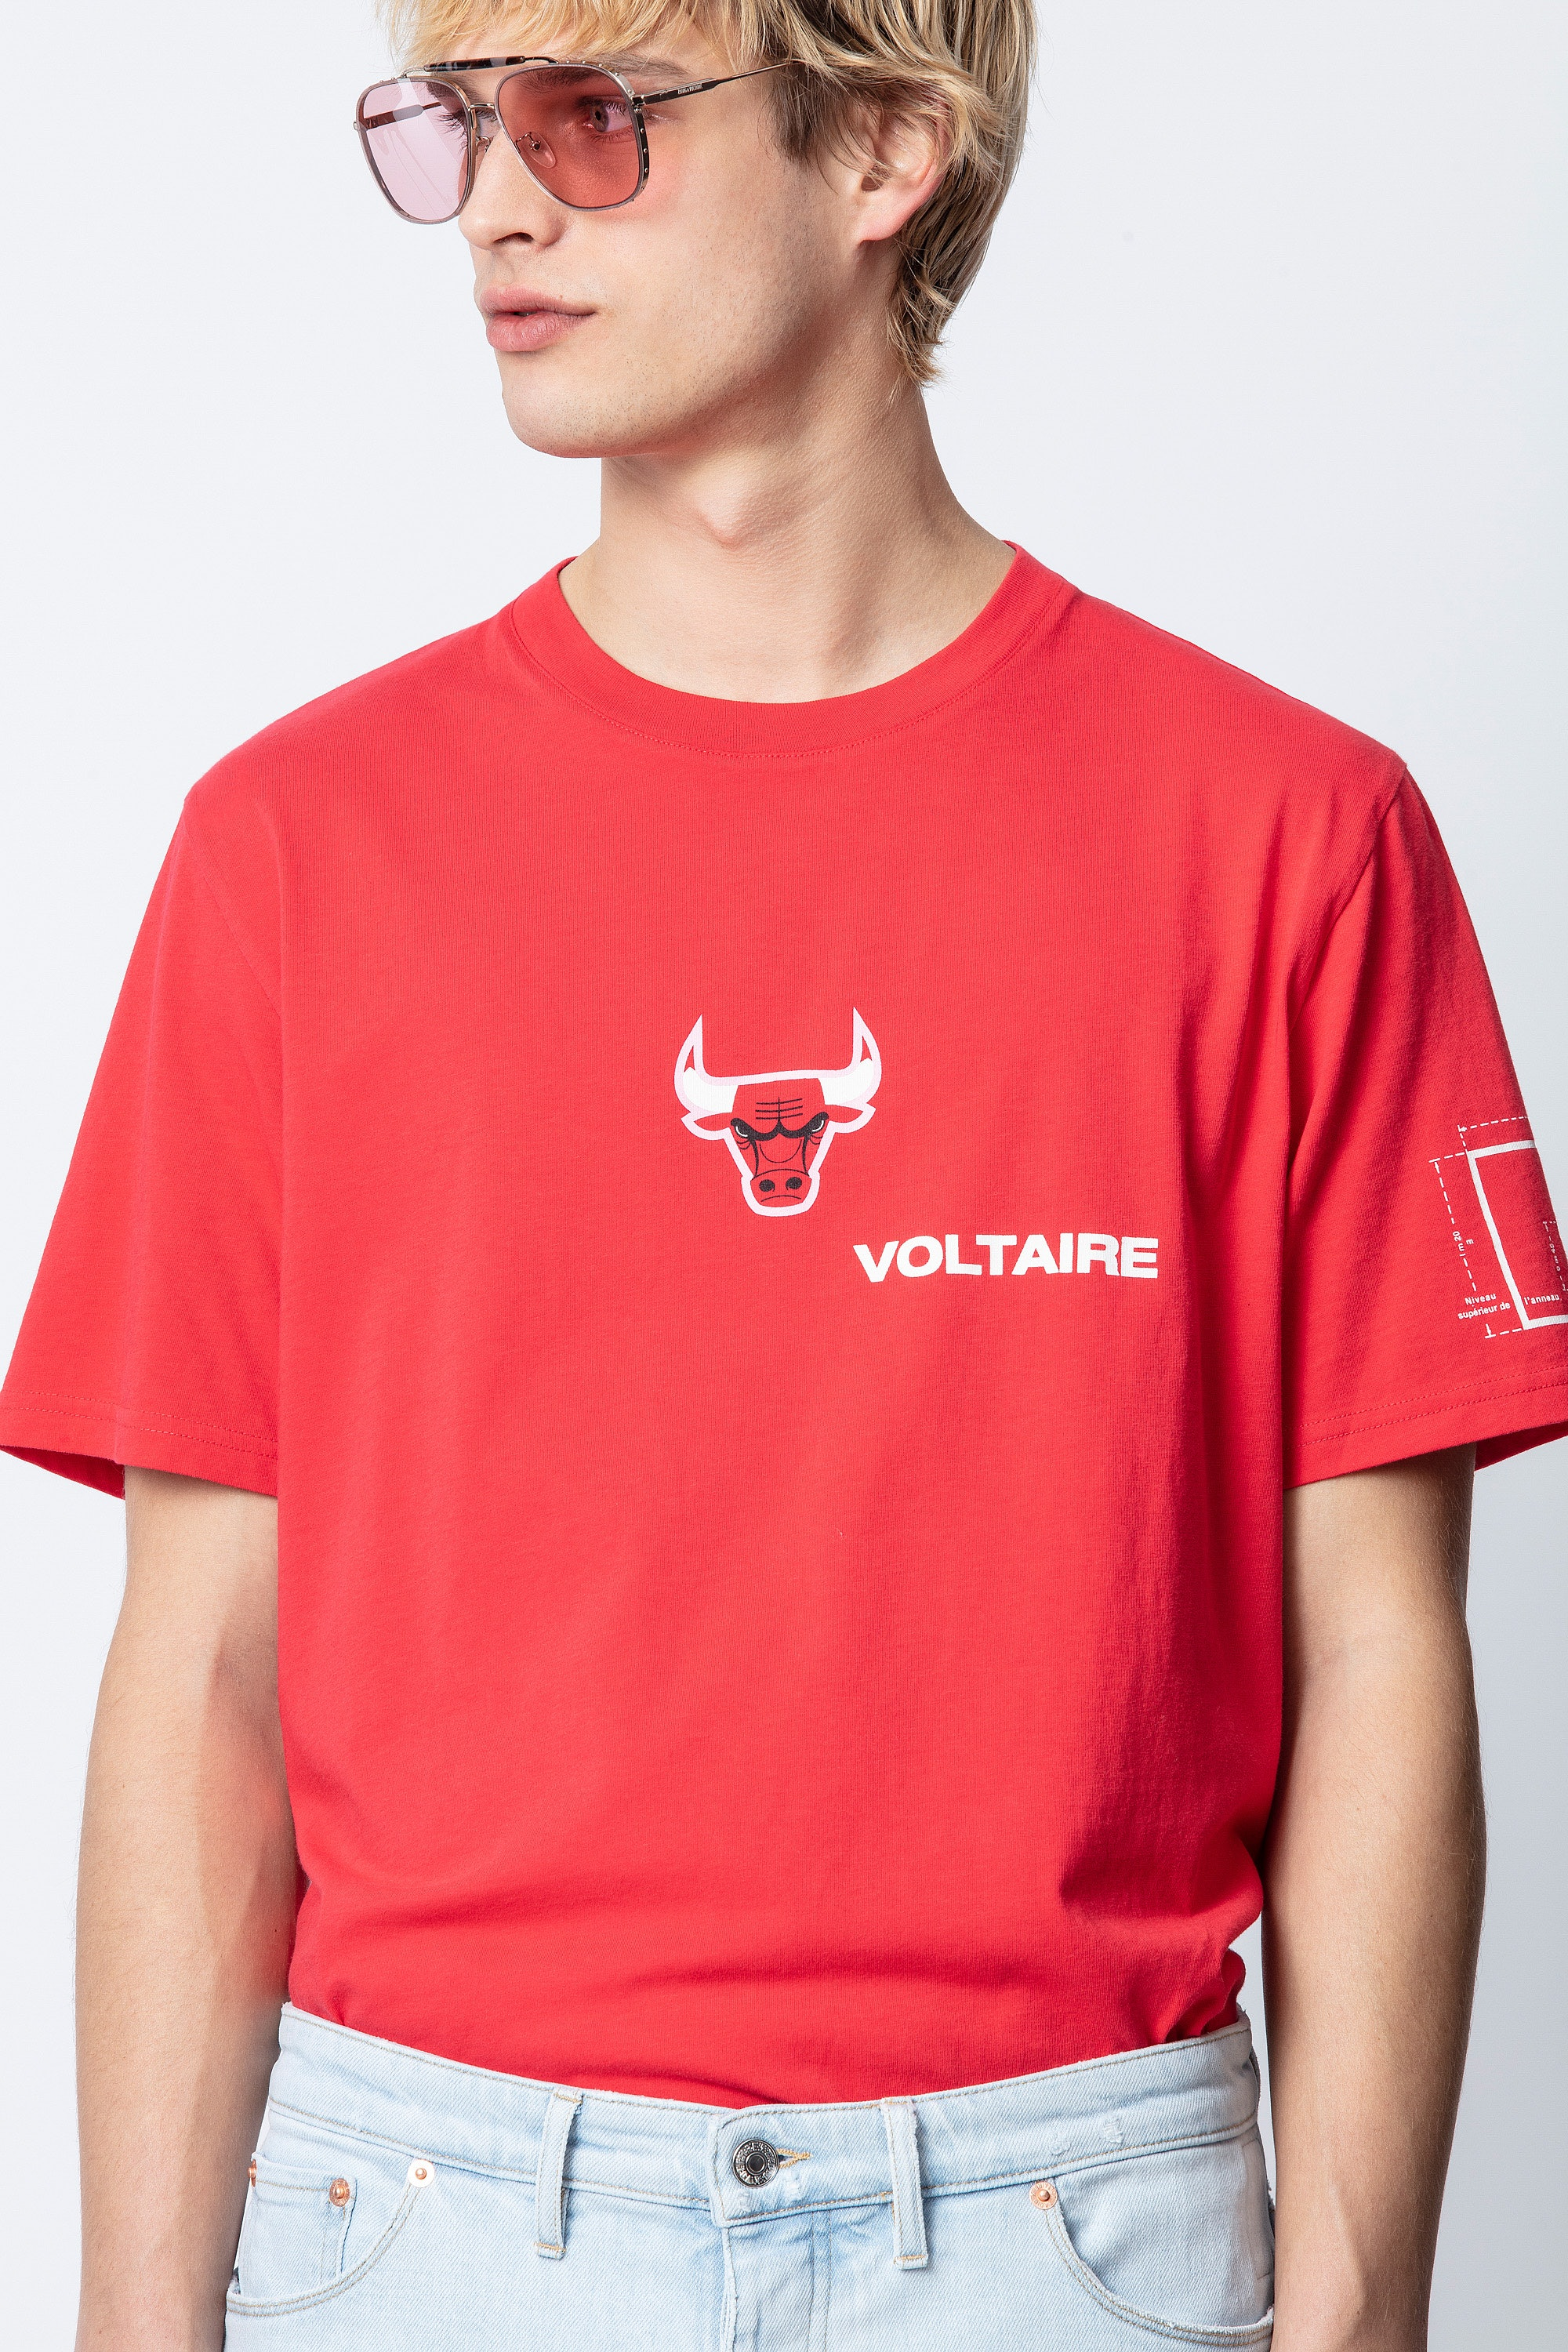 T-Shirt Tomias Chicago Bulls